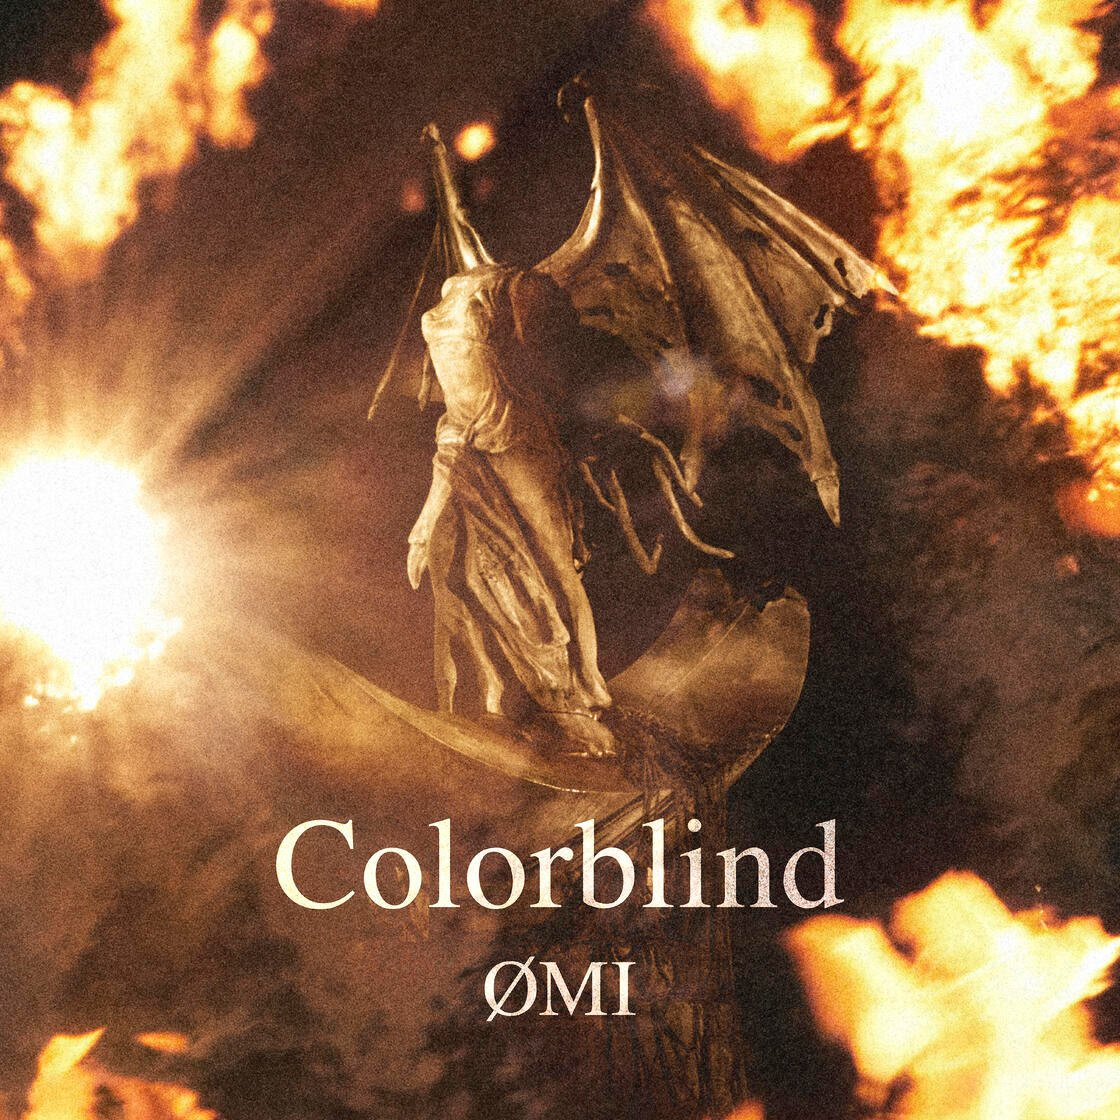 """ØMI brings clarity with new single, """"Colorblind"""" of his """"Answer … Shadow"""" EP"""